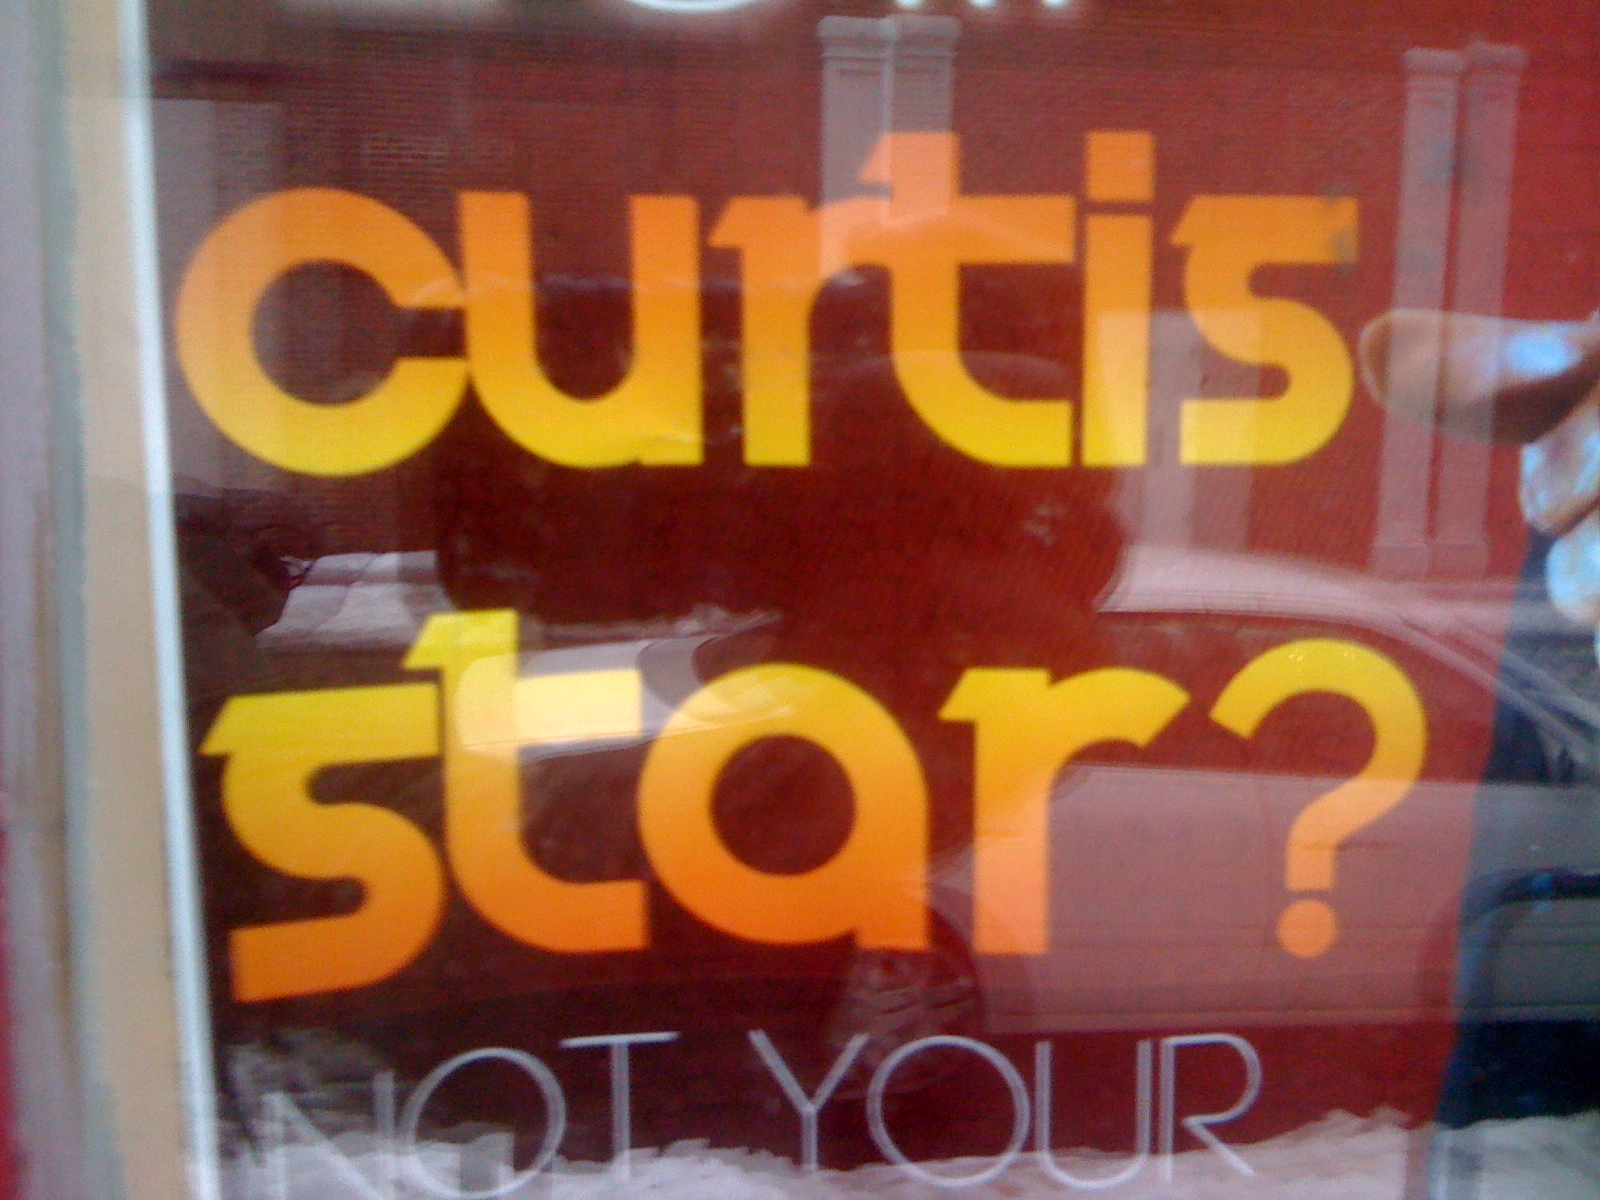 Curtis Star